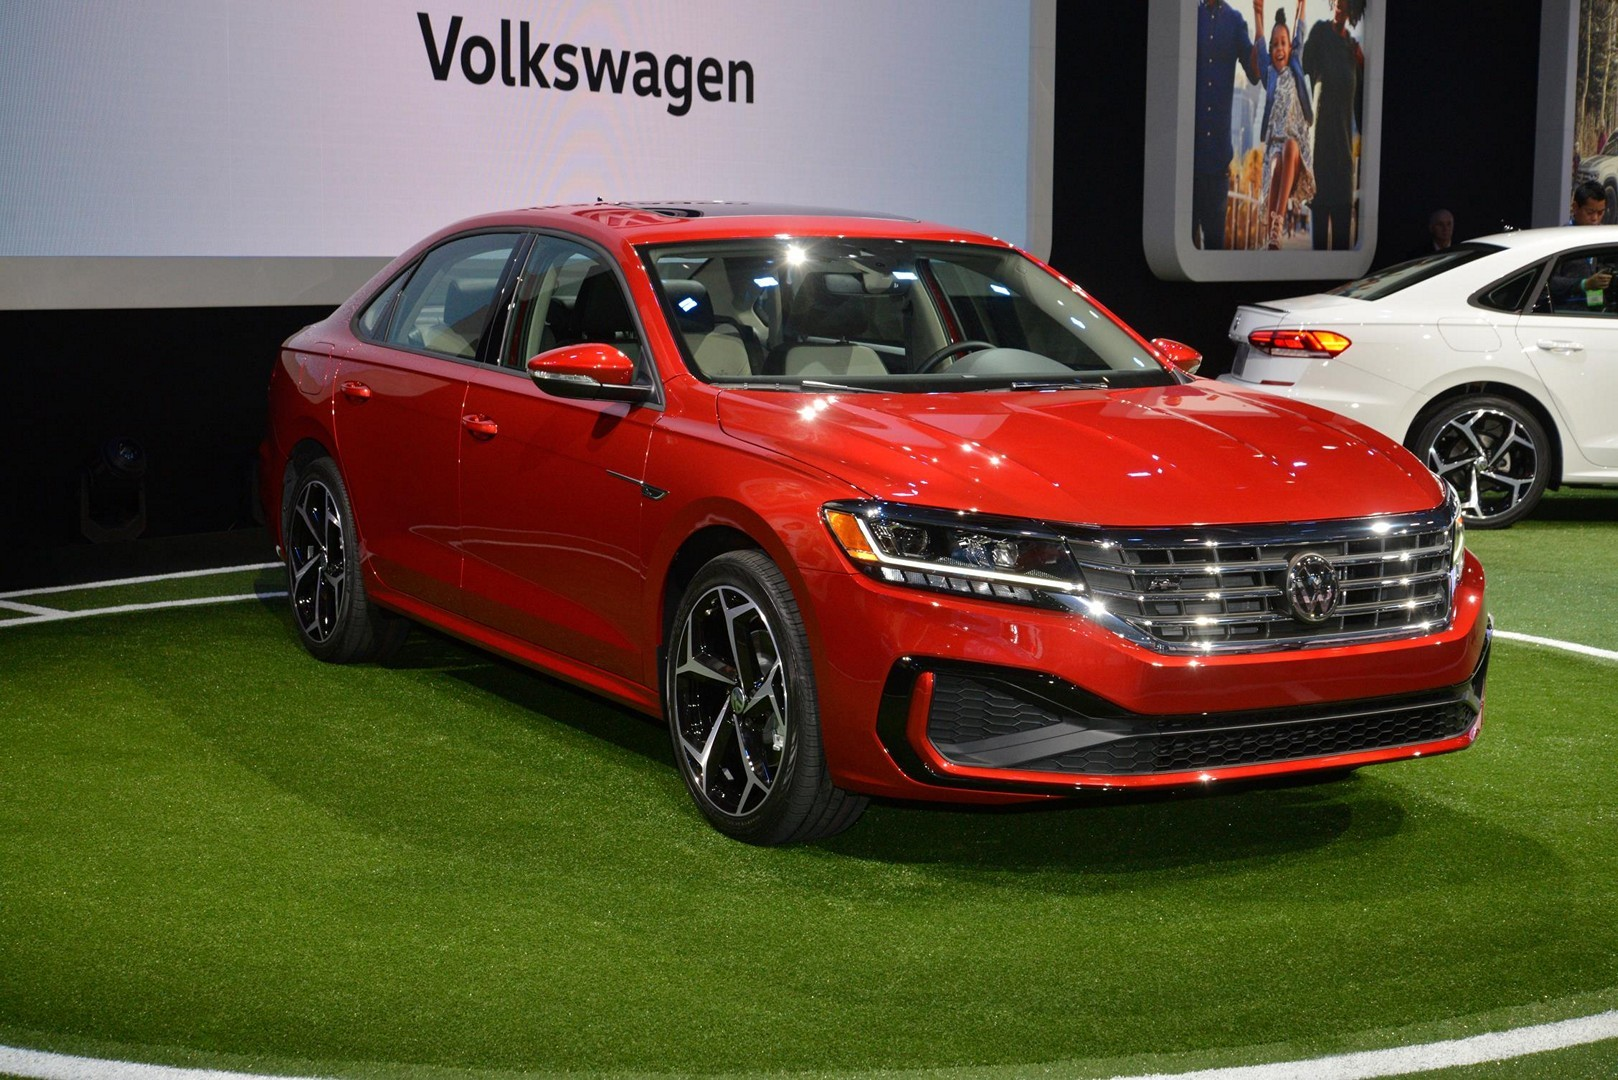 2020 VW Passat Is One Facelift Away from Moving to Florida - autoevolution